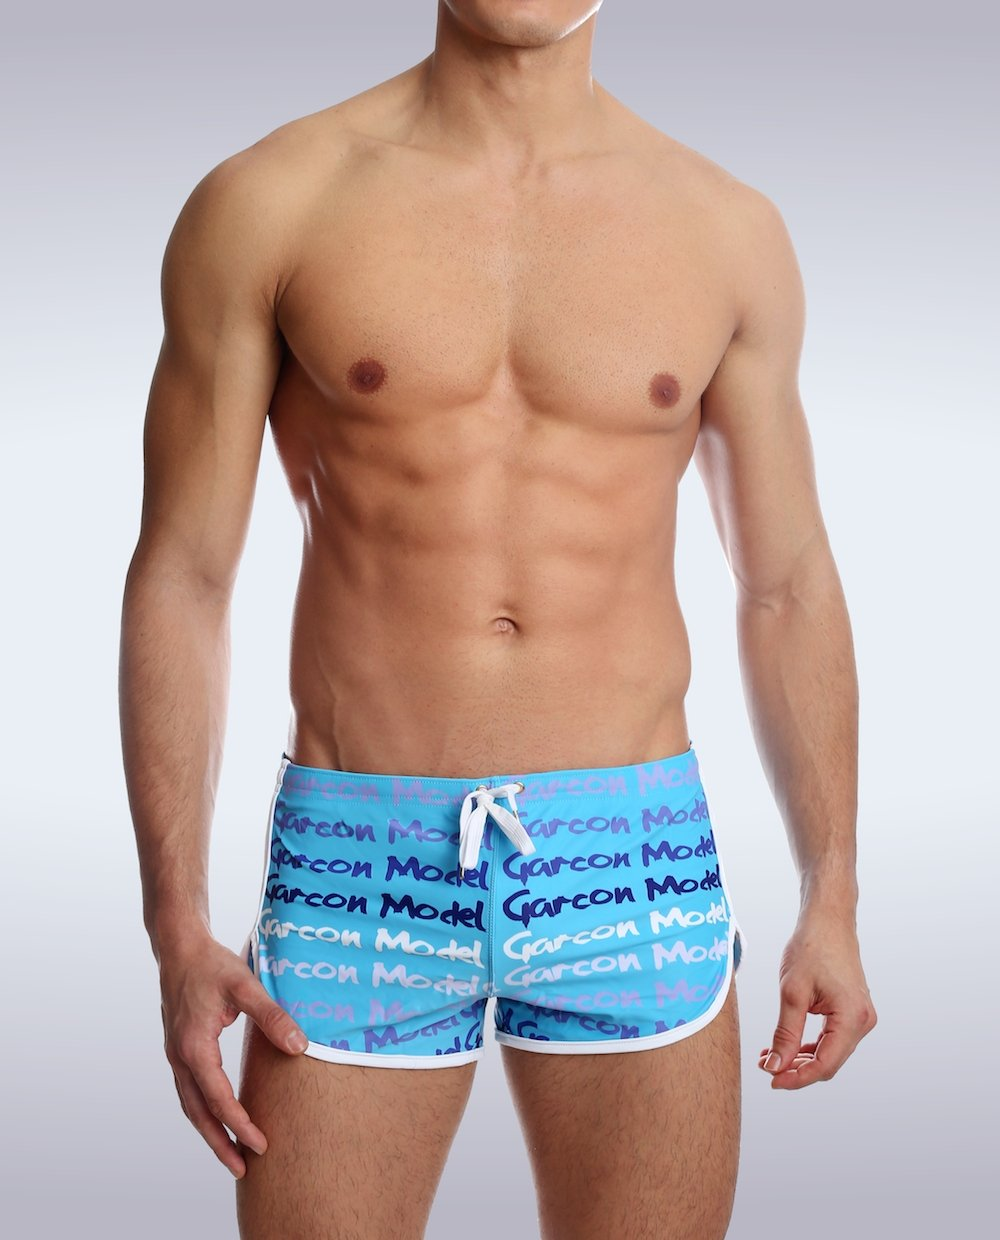 Blue Graffiti Swim Short - Garçon Underwear sexy men's underwear Swim Short Garçon Underwear